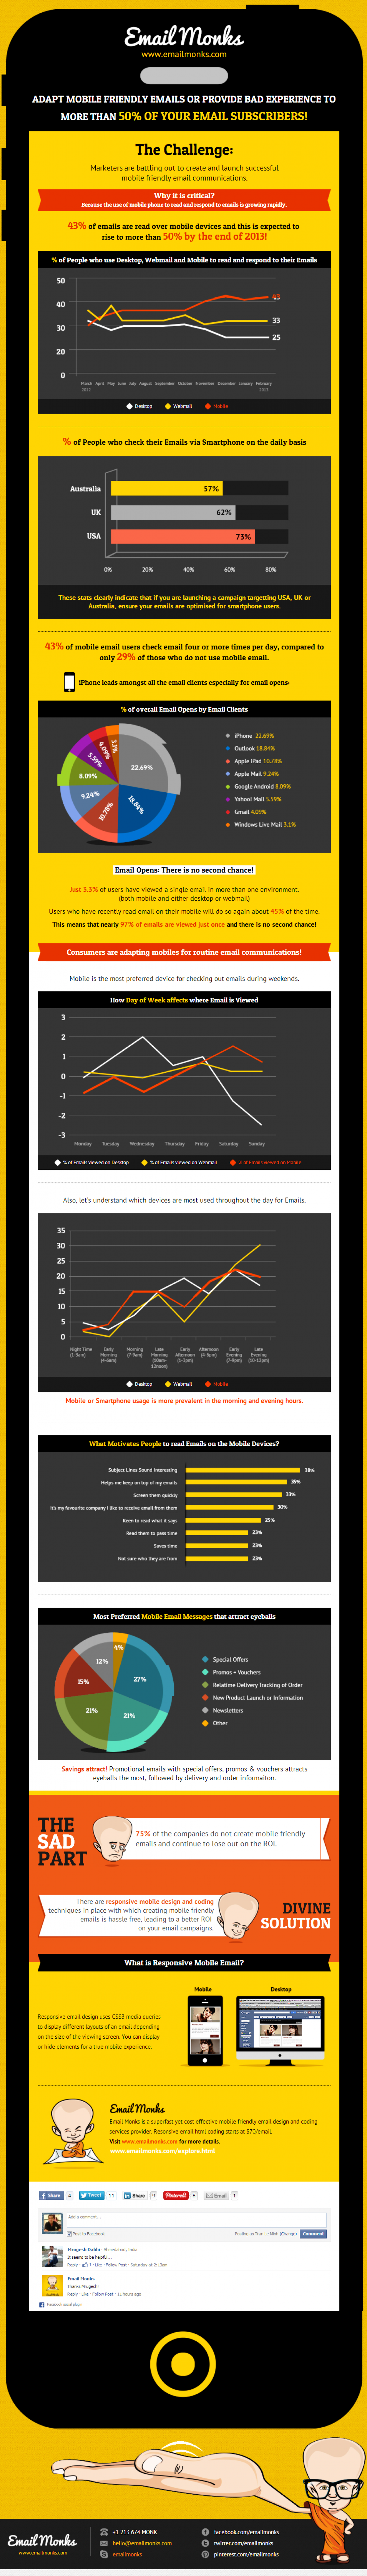 Adapt Mobile friendly emails or provide bad experience to more than 50% of your email subscribers! Infographic